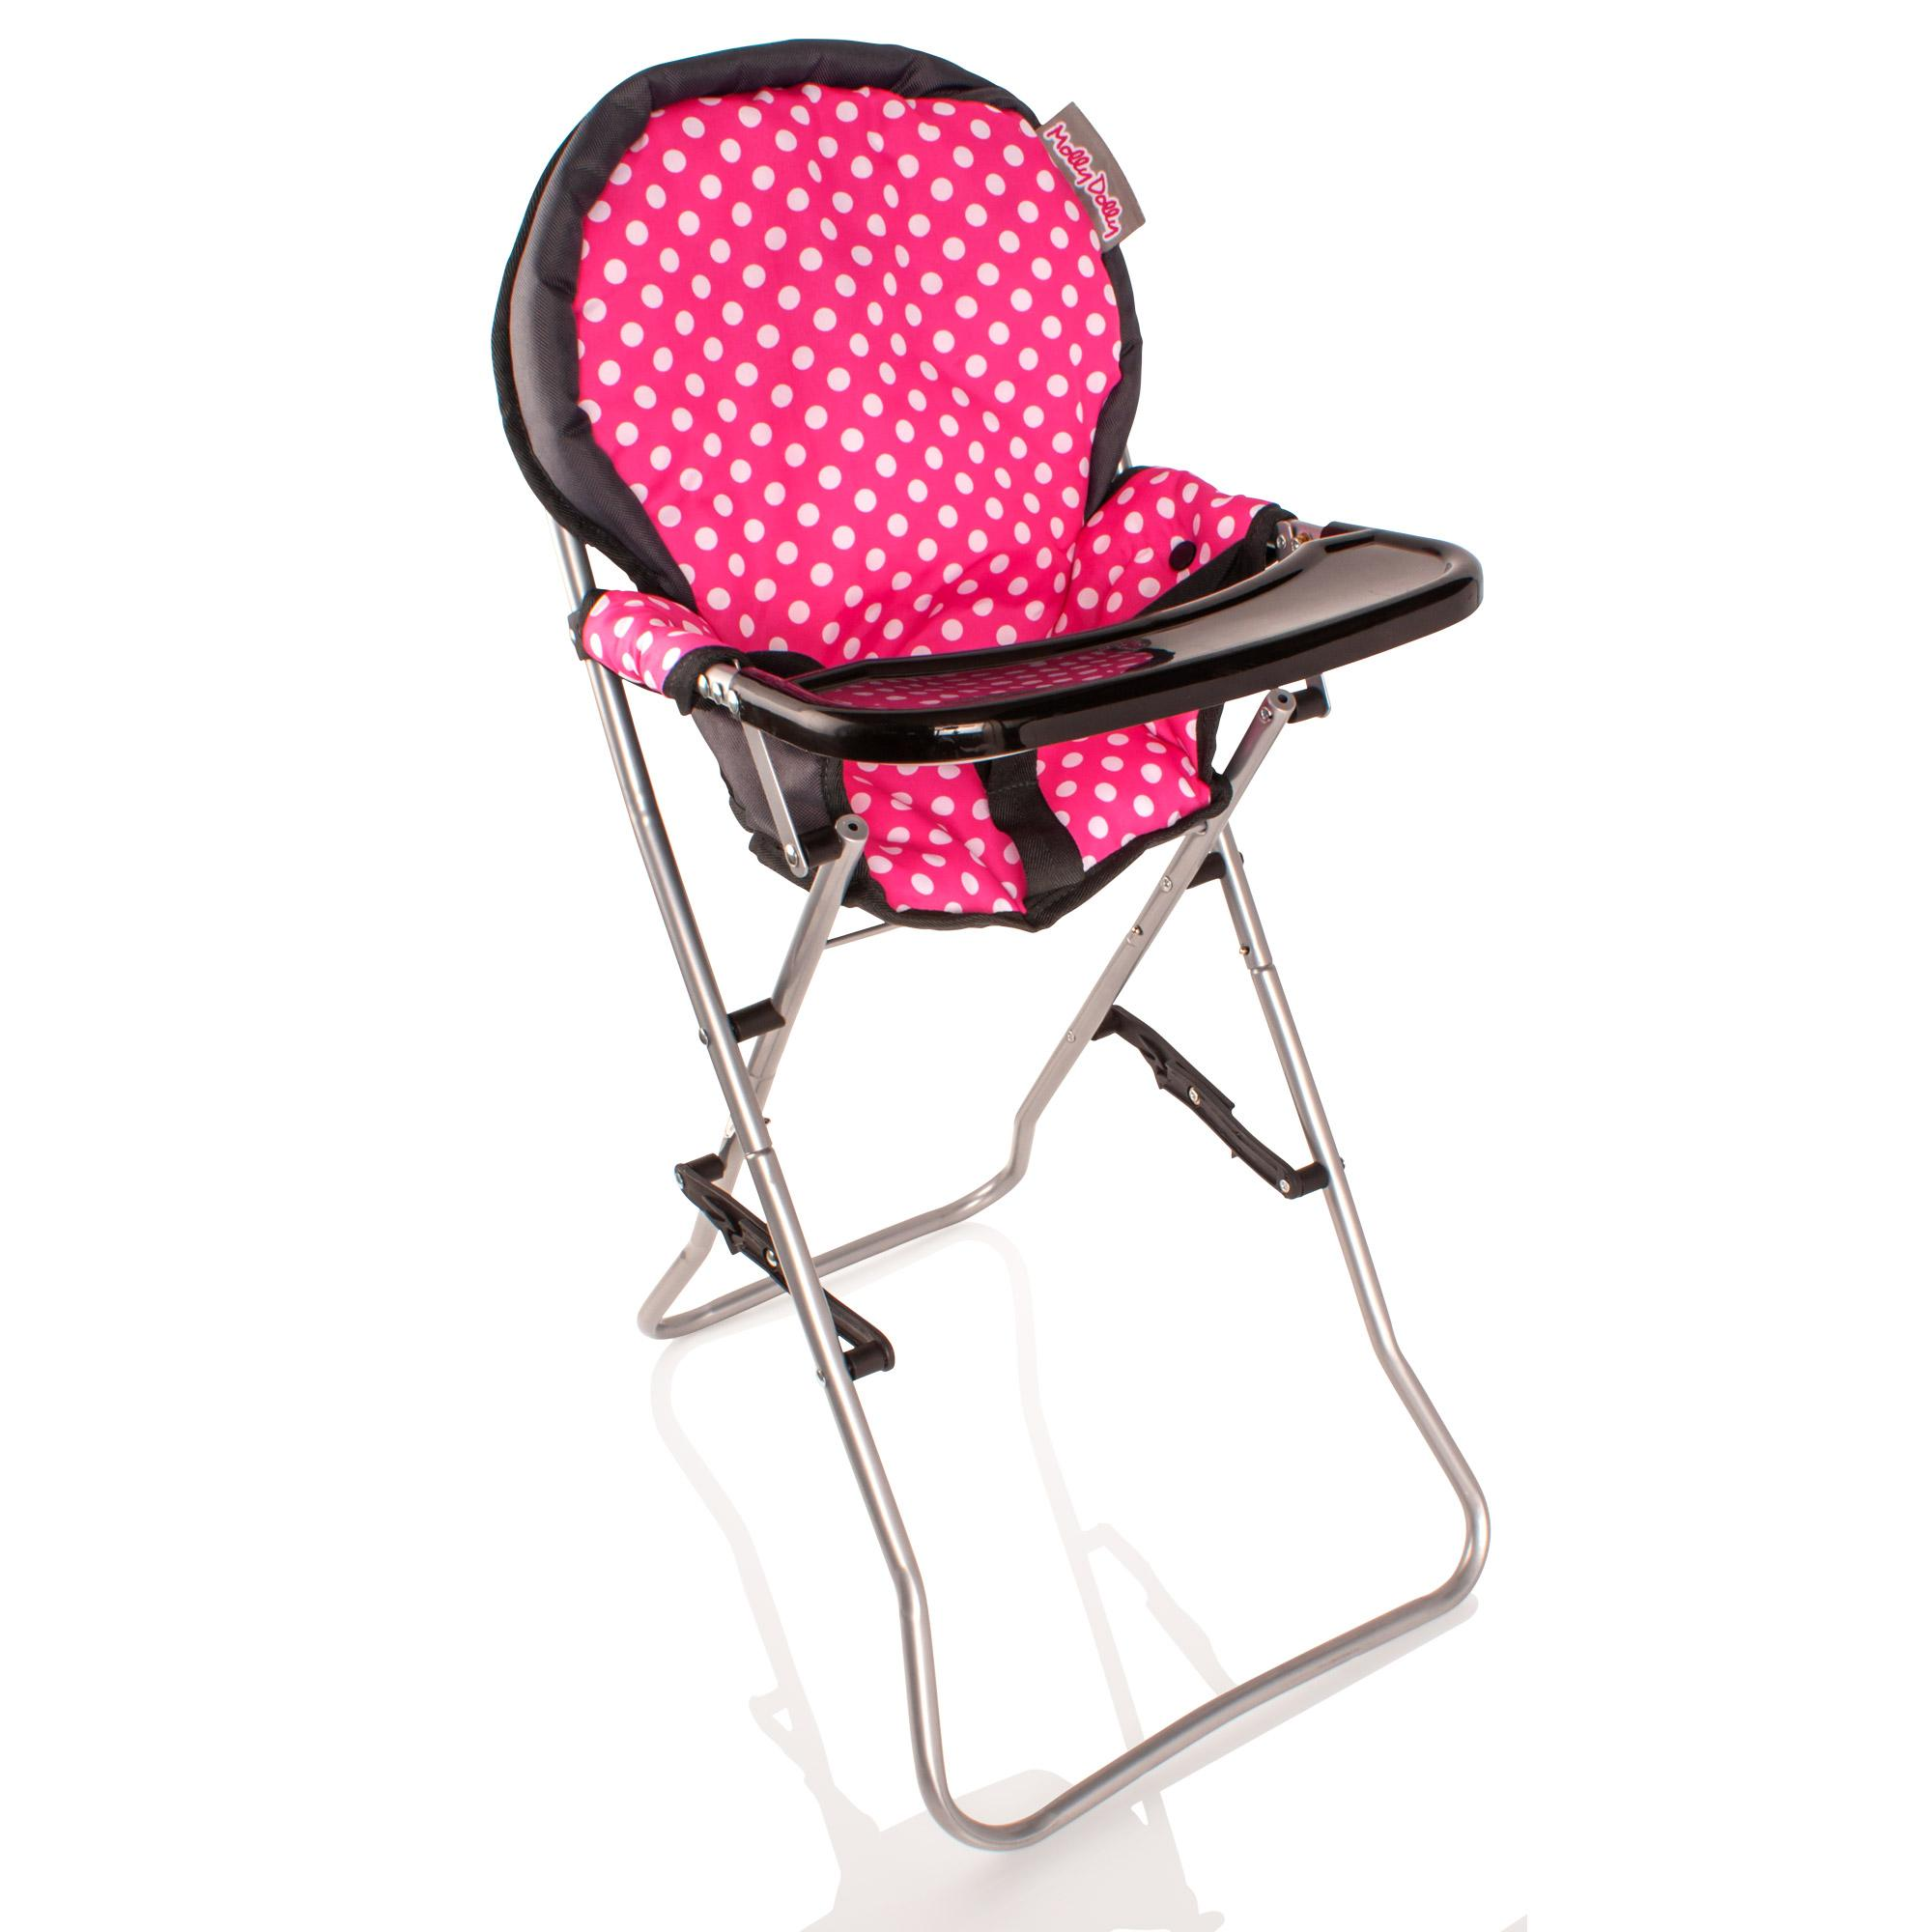 High Chair Toy Holder : Molly dolly deluxe cm dolls high chair feeding seat ebay